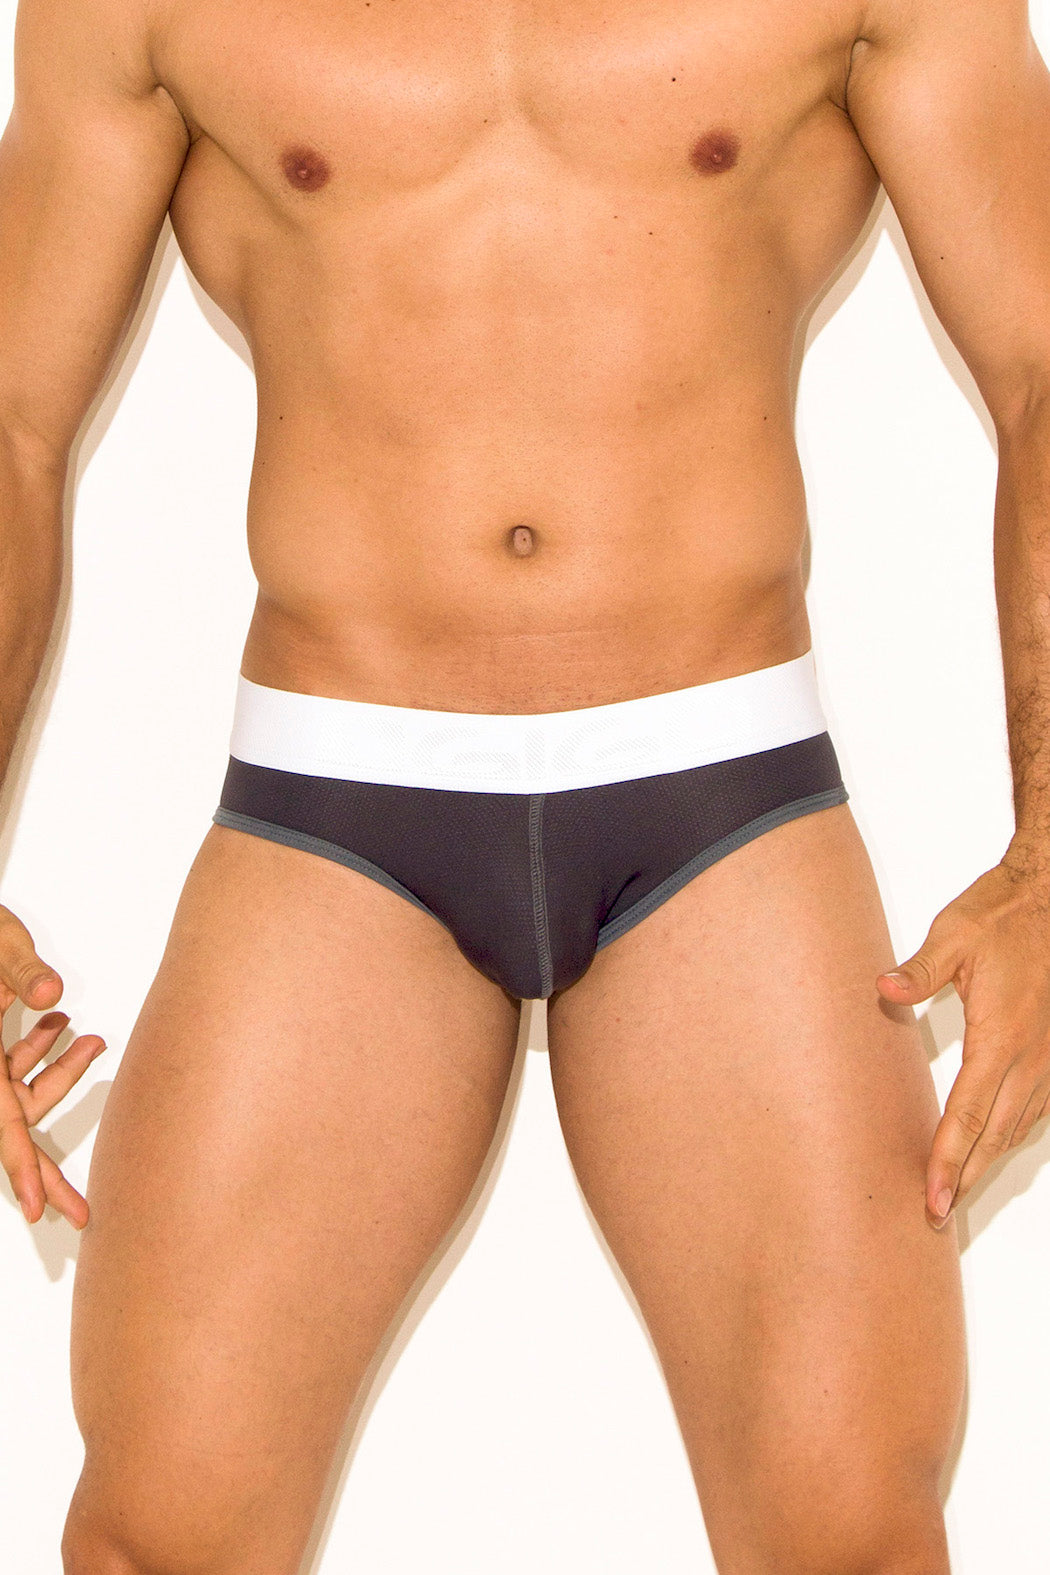 Gigo Grey Energy Jock-Brief